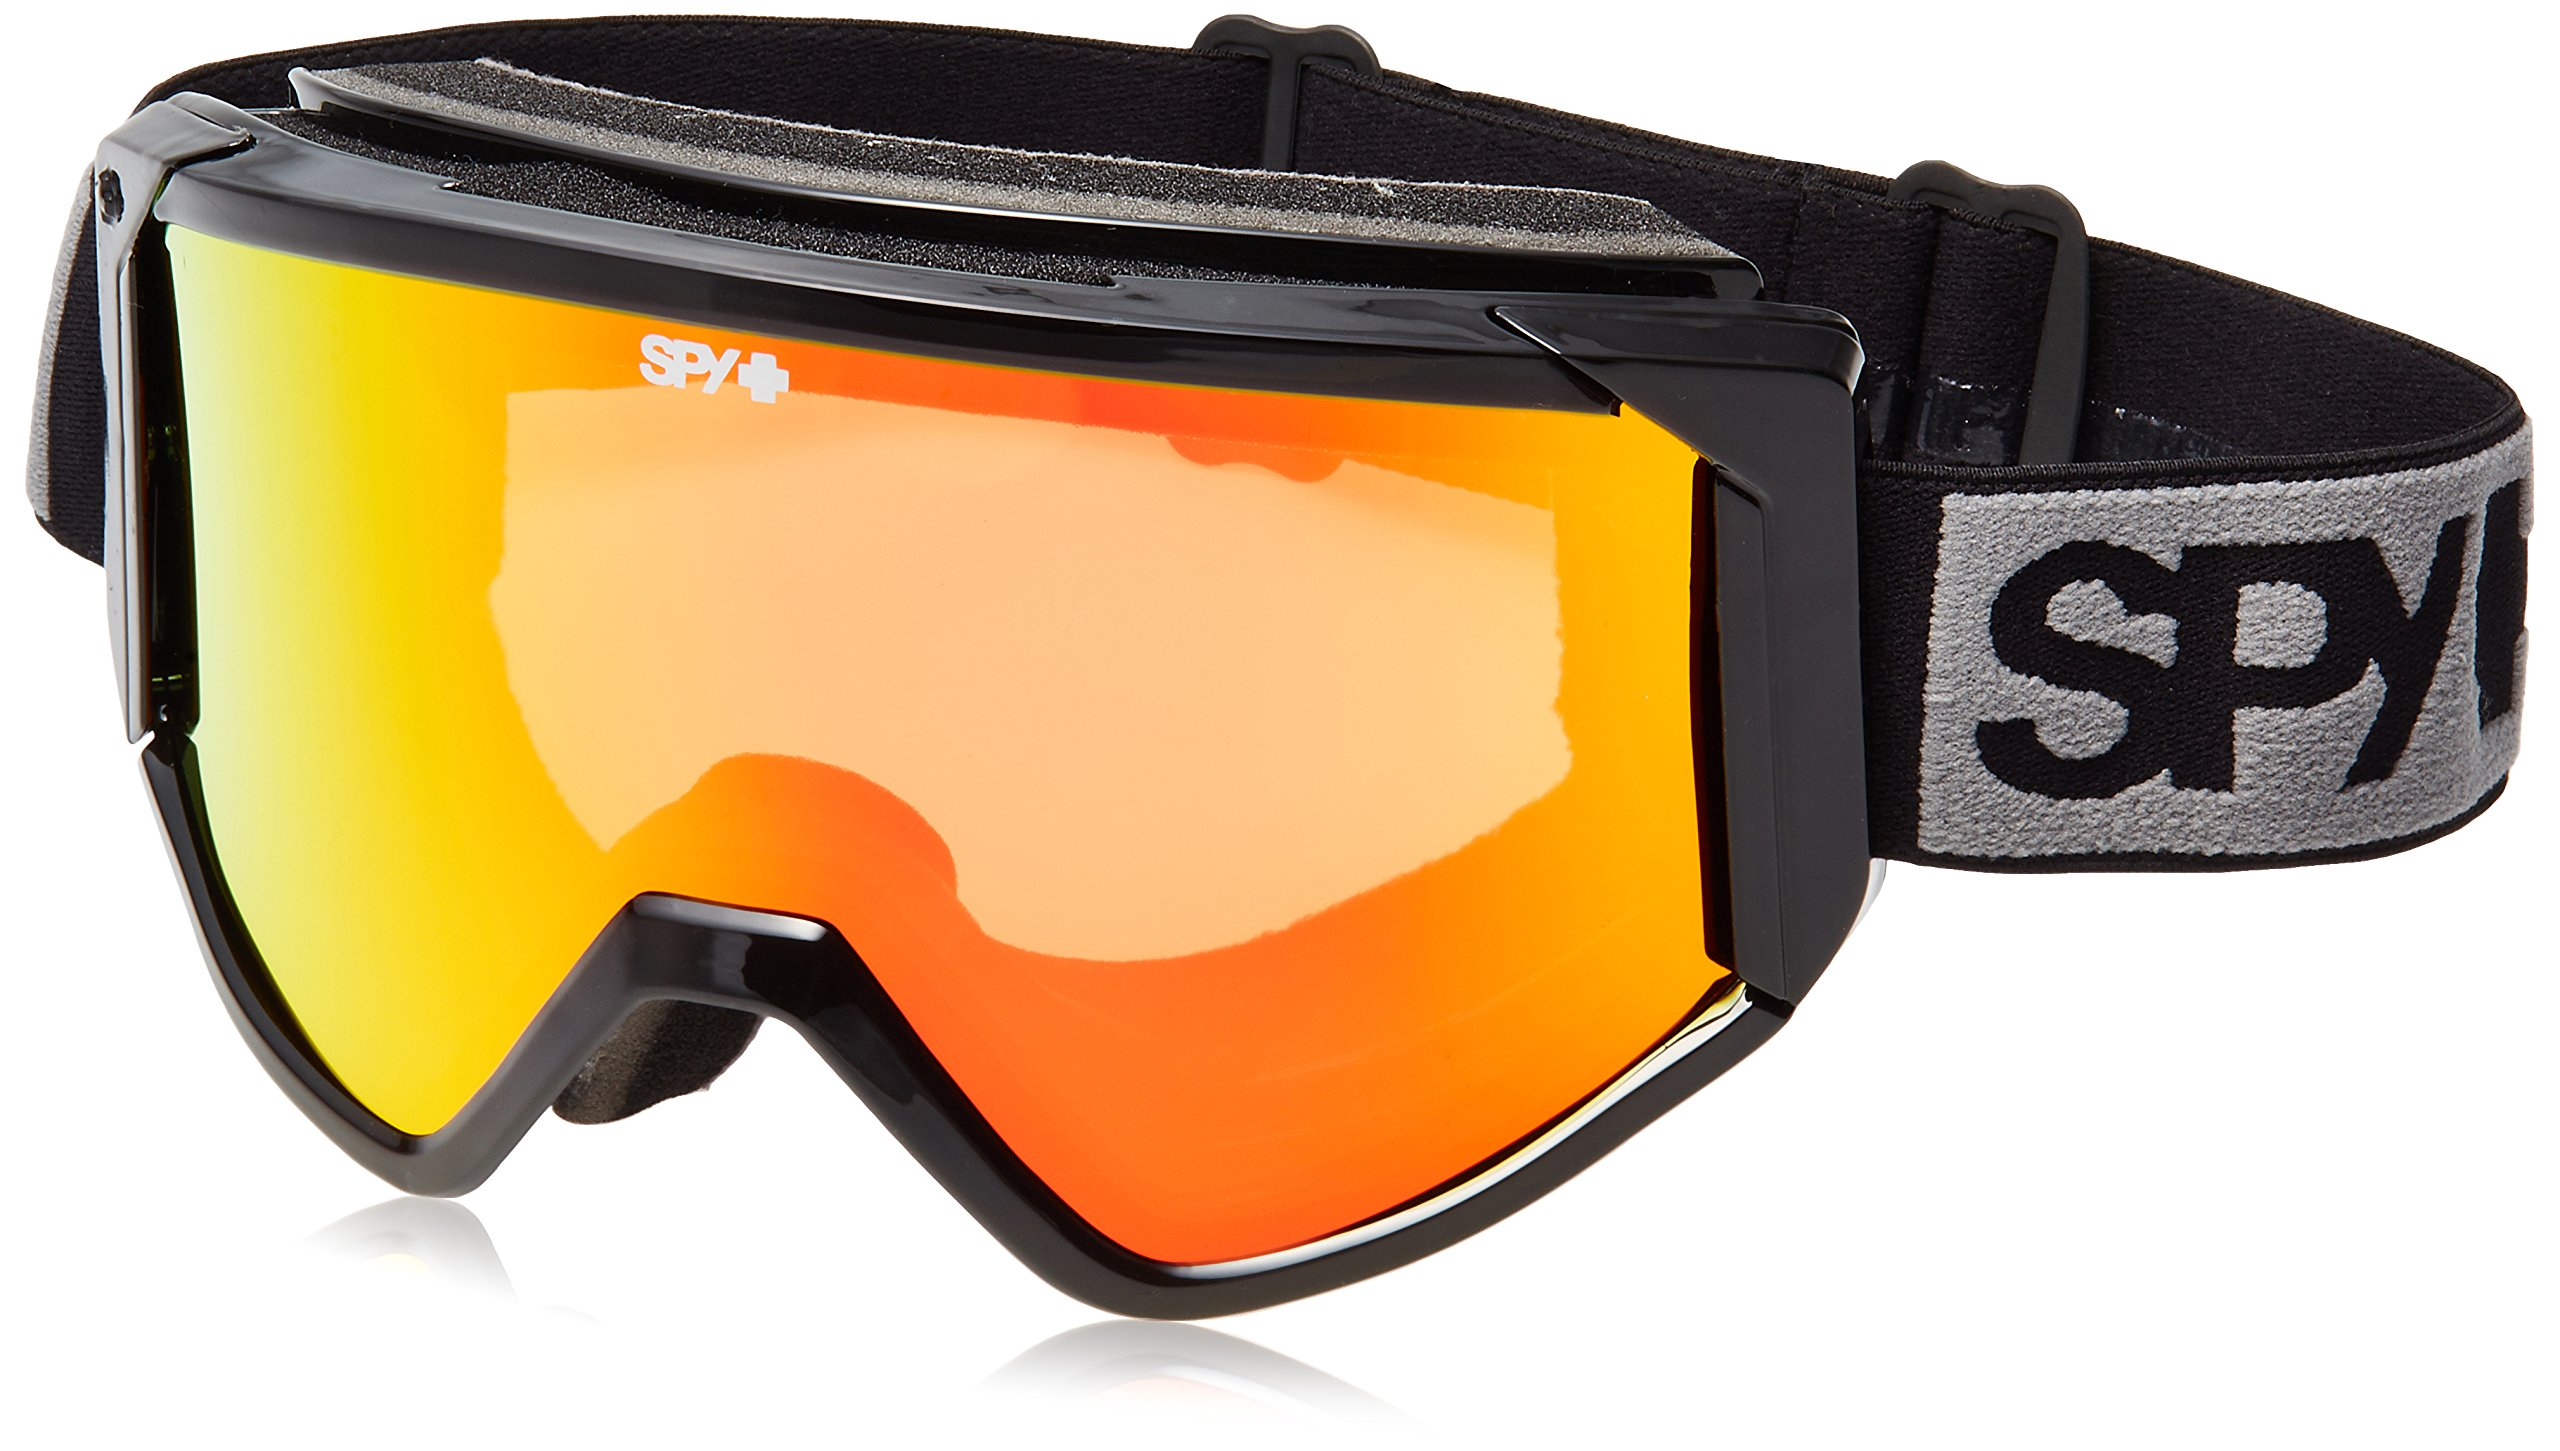 SPY RAIDER Goggles Asian Fit Black Bronze Red Spectra Ski Snowboard NEW by Spy